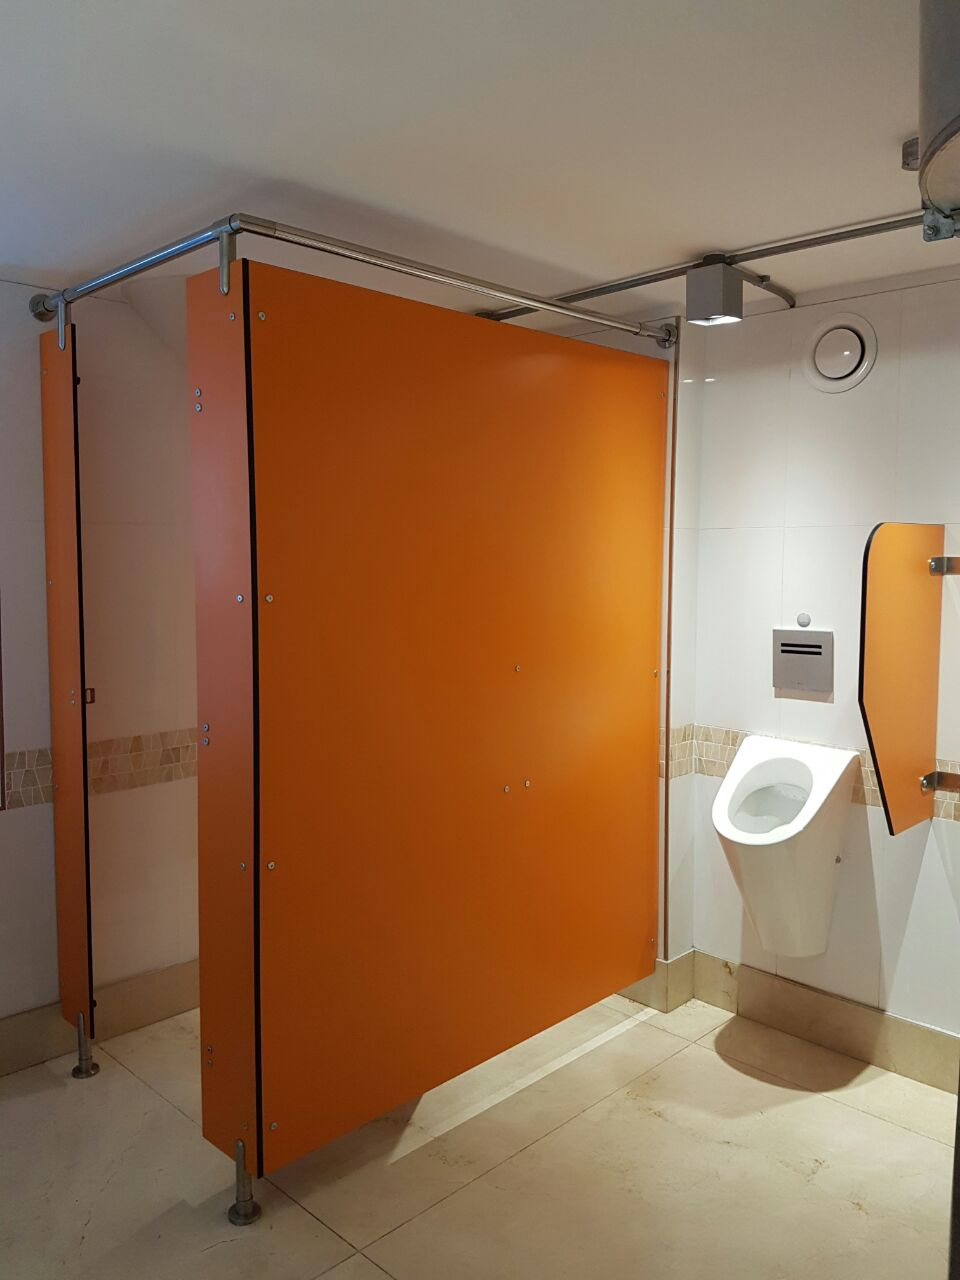 Density Of Plastic >> Toilet Cubicles – Cubicle Solutions